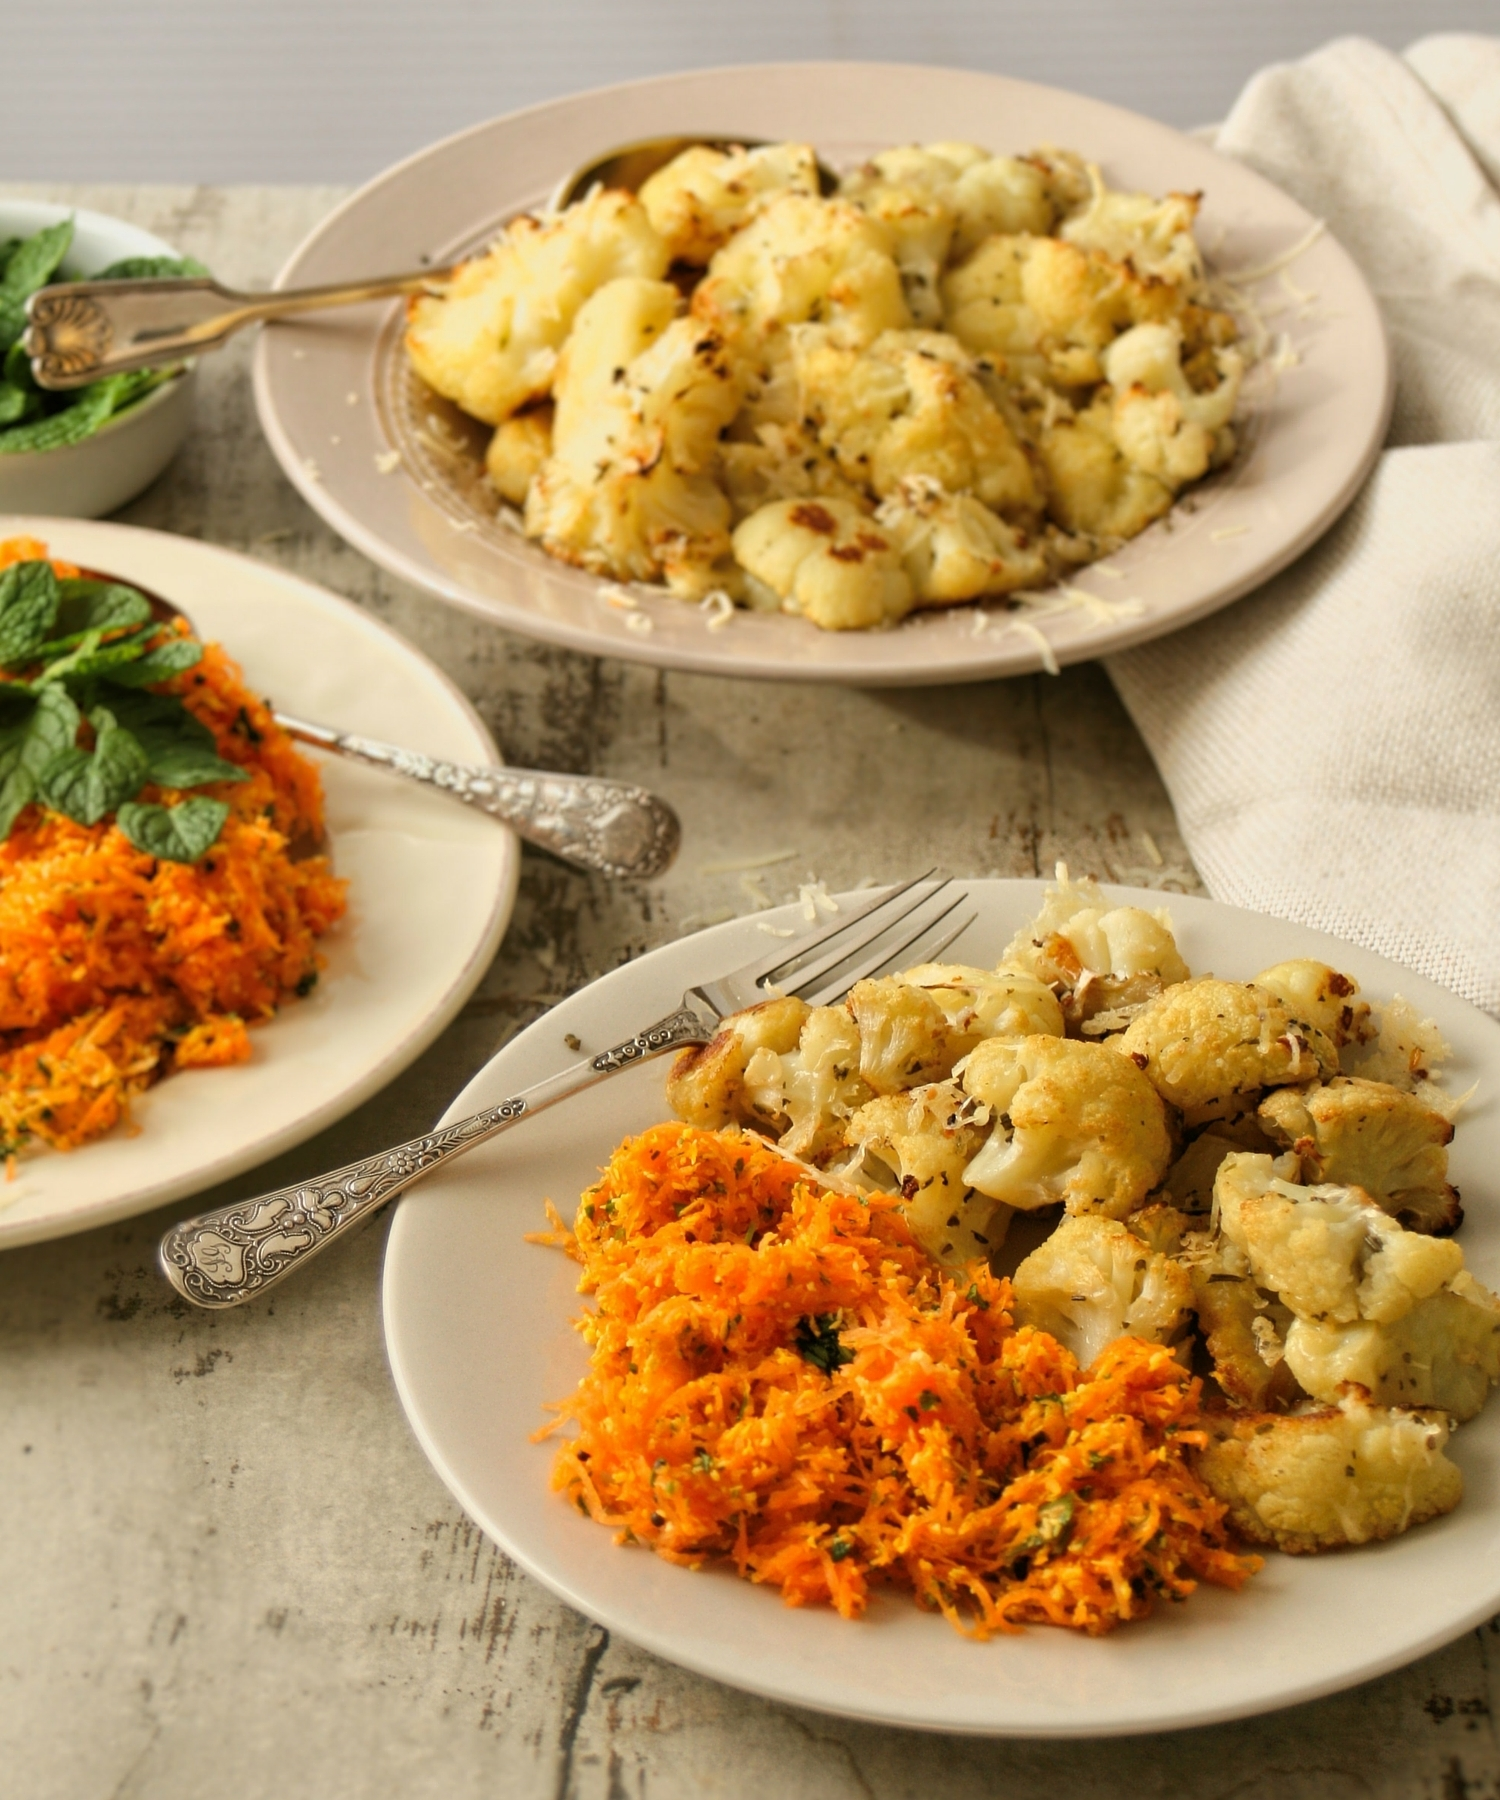 cupcakes-and-couscous wrote a new post, Two scrumptious sides - carrot salad and oven roasted cauliflower, on the site Cupcakes & Couscous